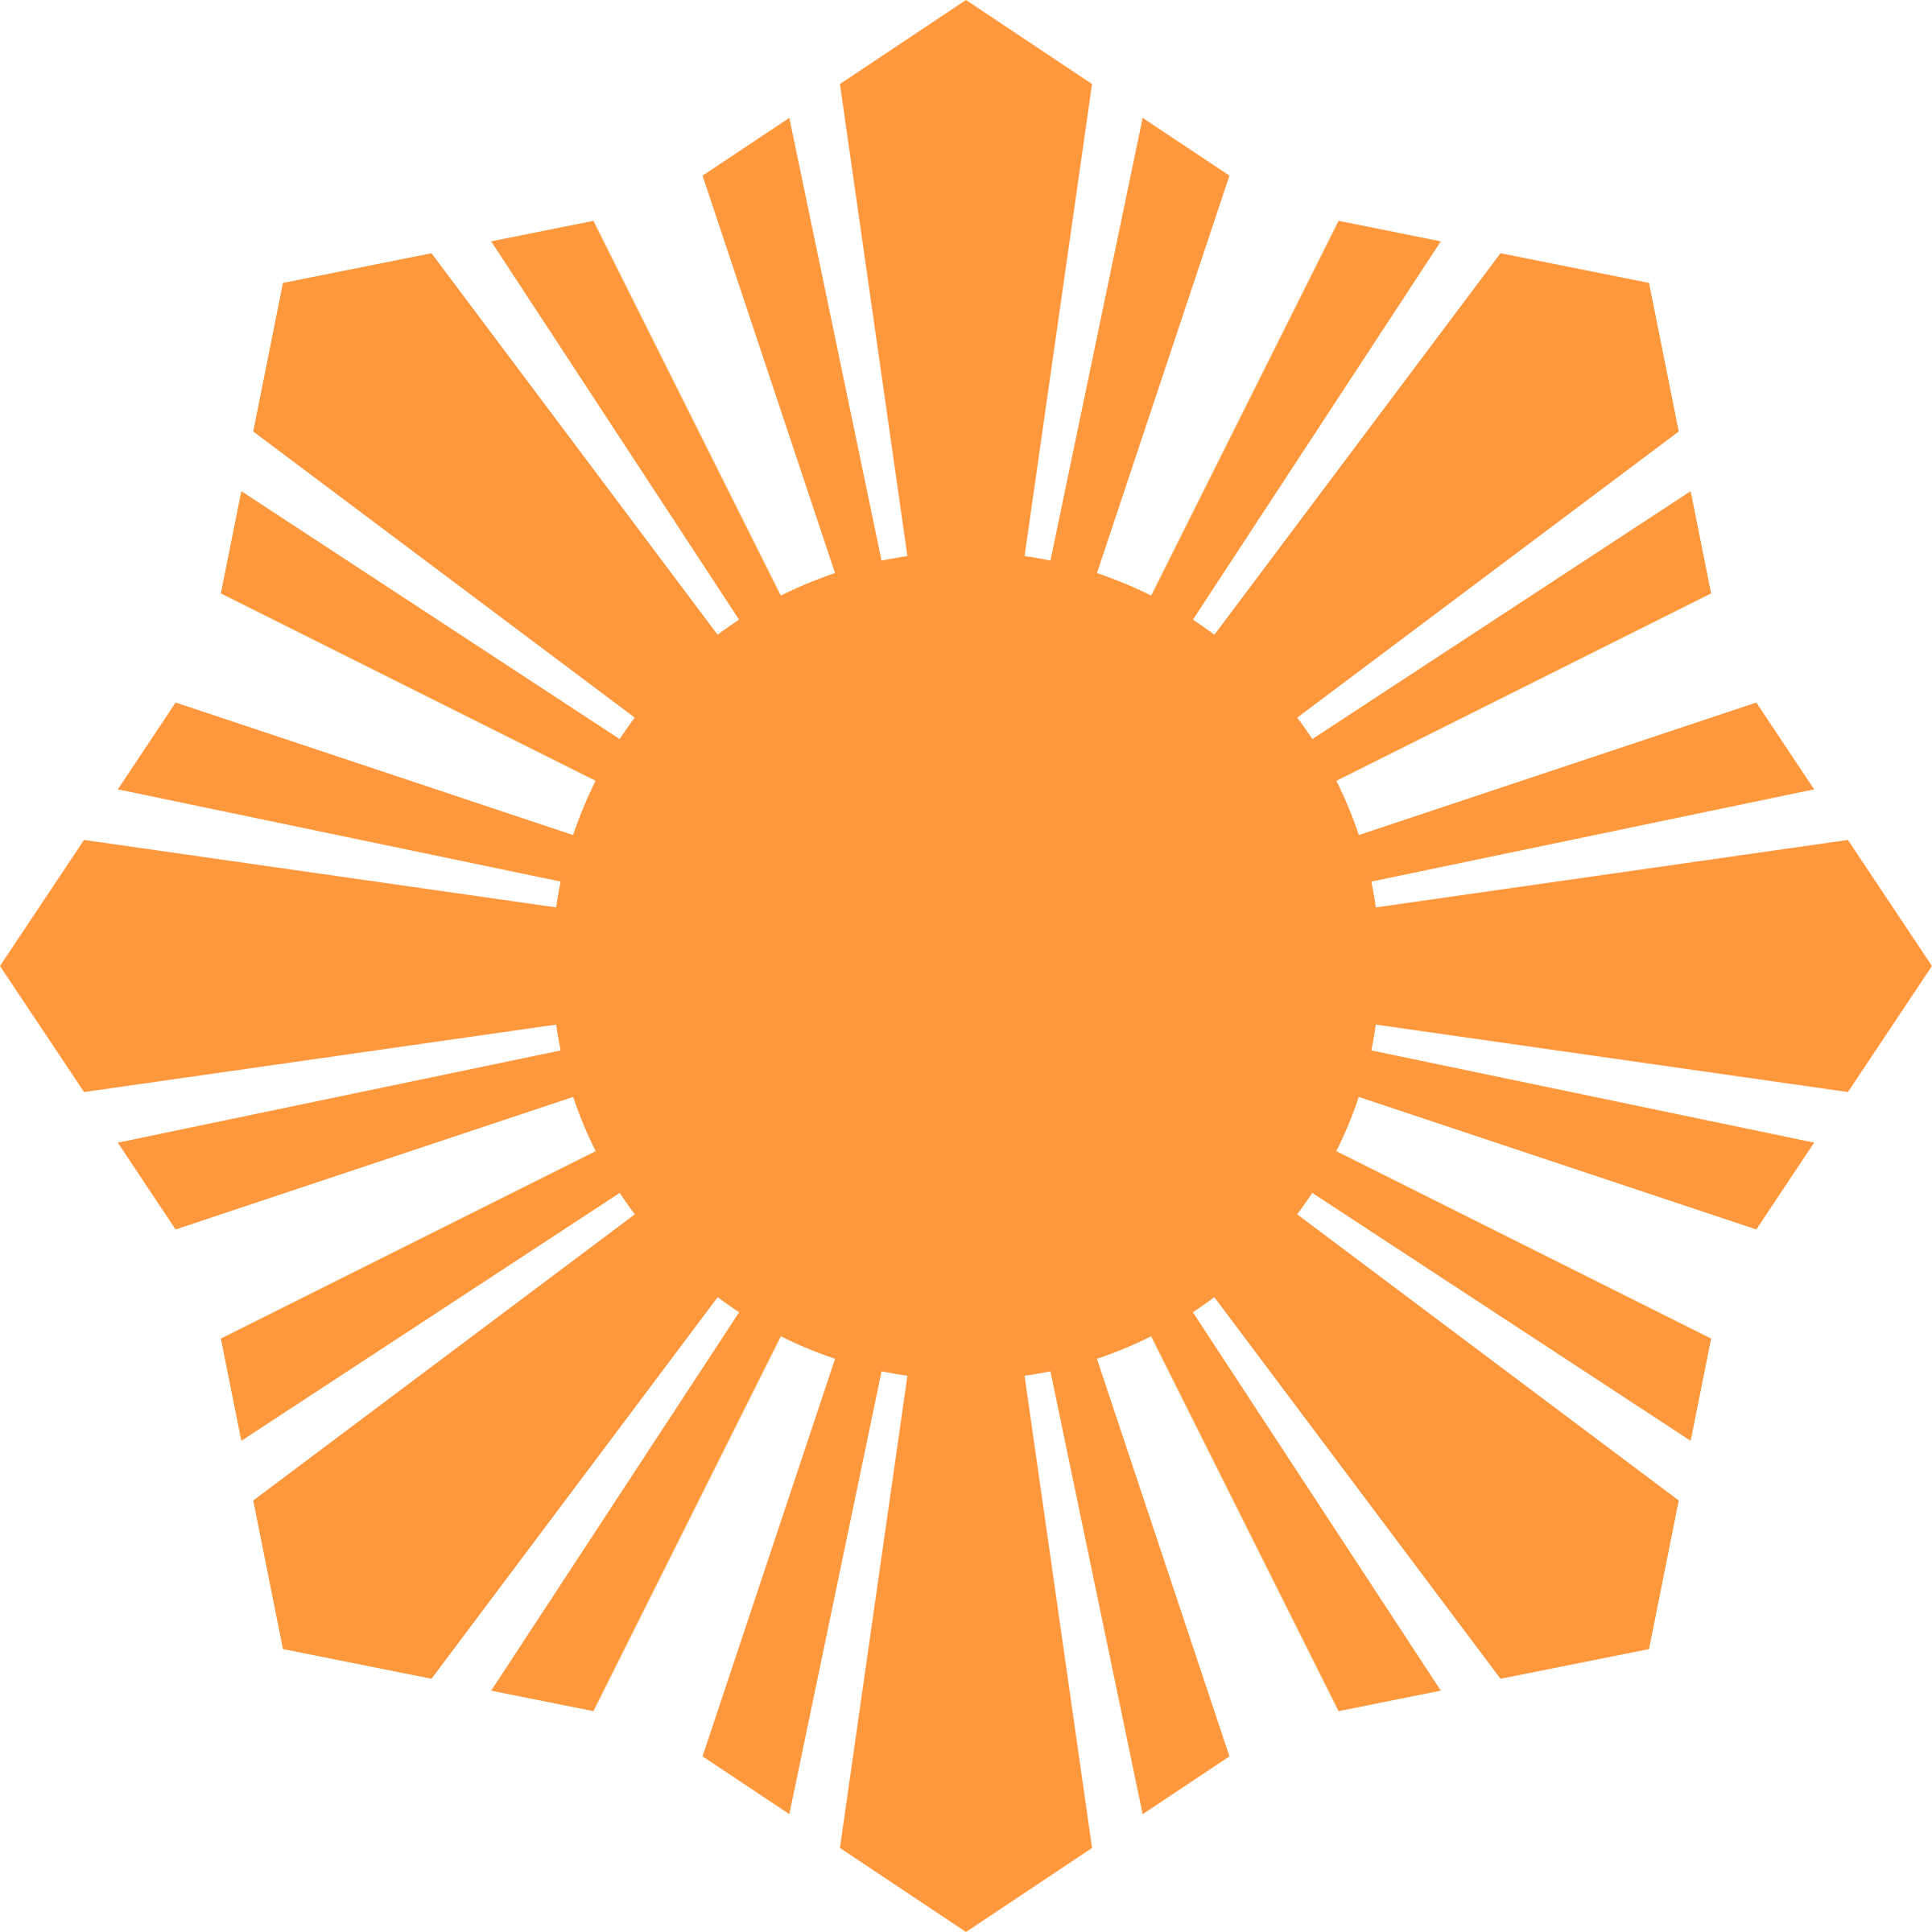 Philippines sun clipart image royalty free stock Clipart - Sun Symbol Orange image royalty free stock